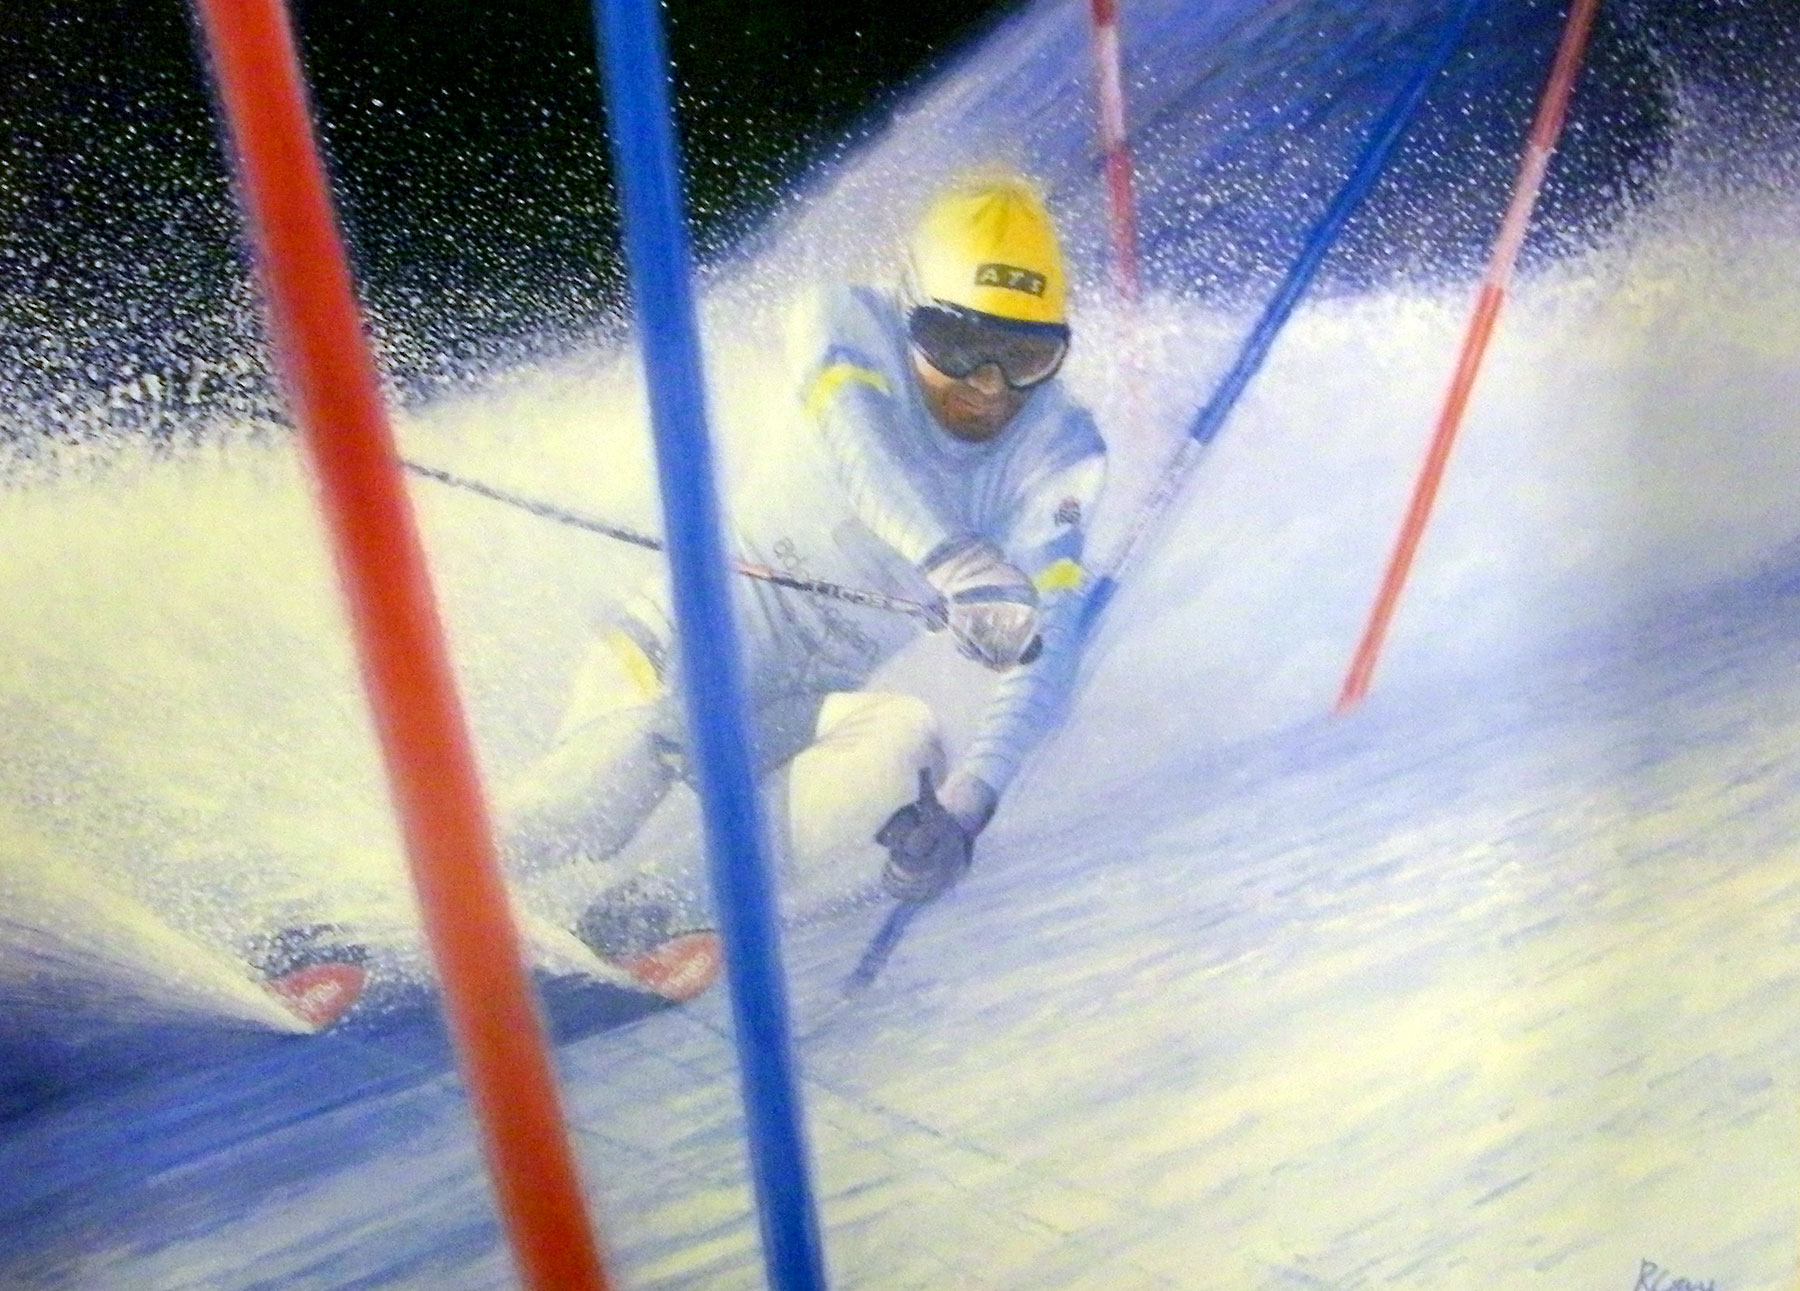 The Story of Skiing - Ingemar Stenmark